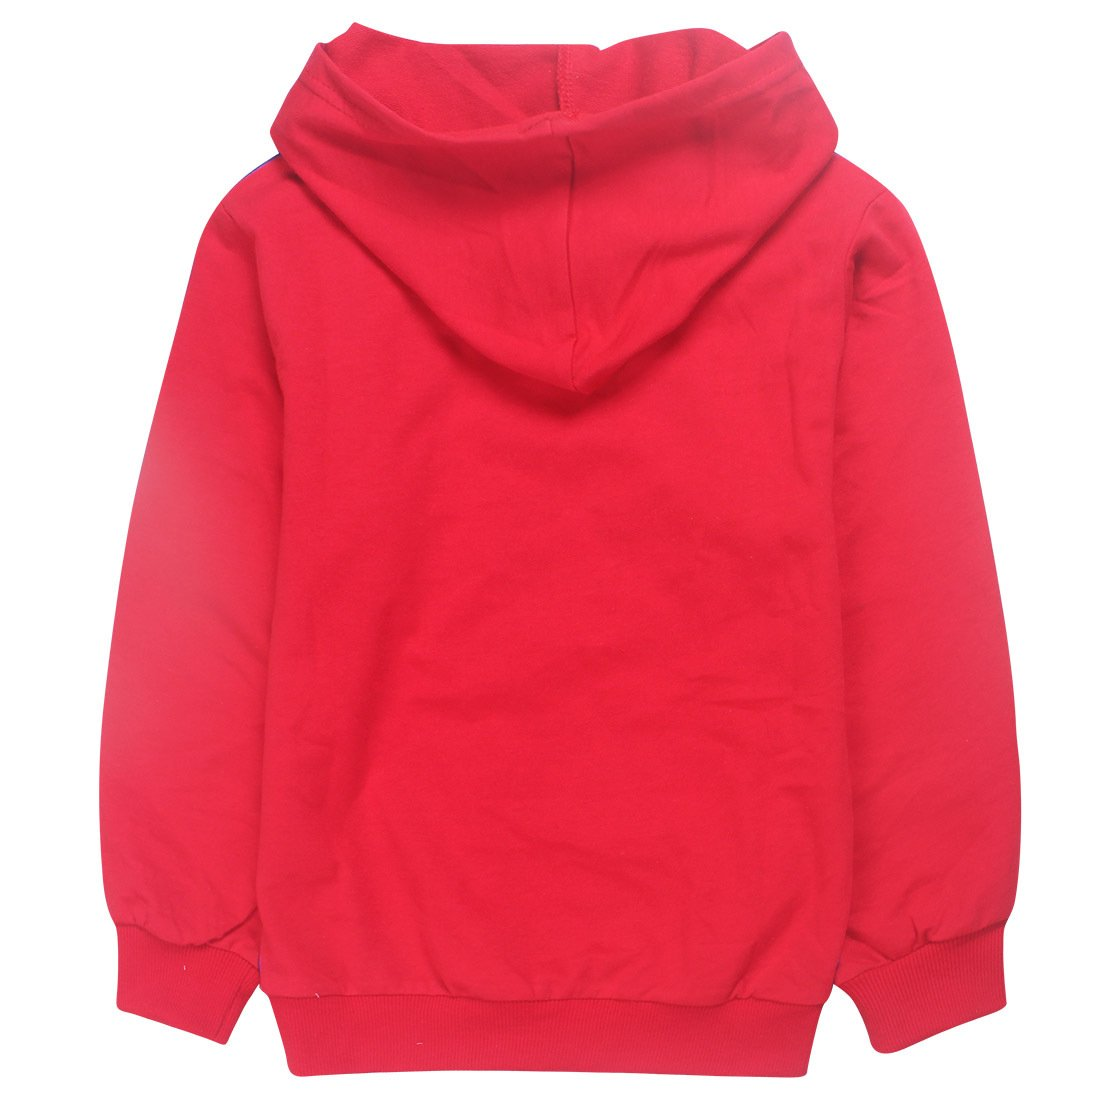 Thombase Boys Girls Roblox Hoodies Pullover Hooded Tops for Kids